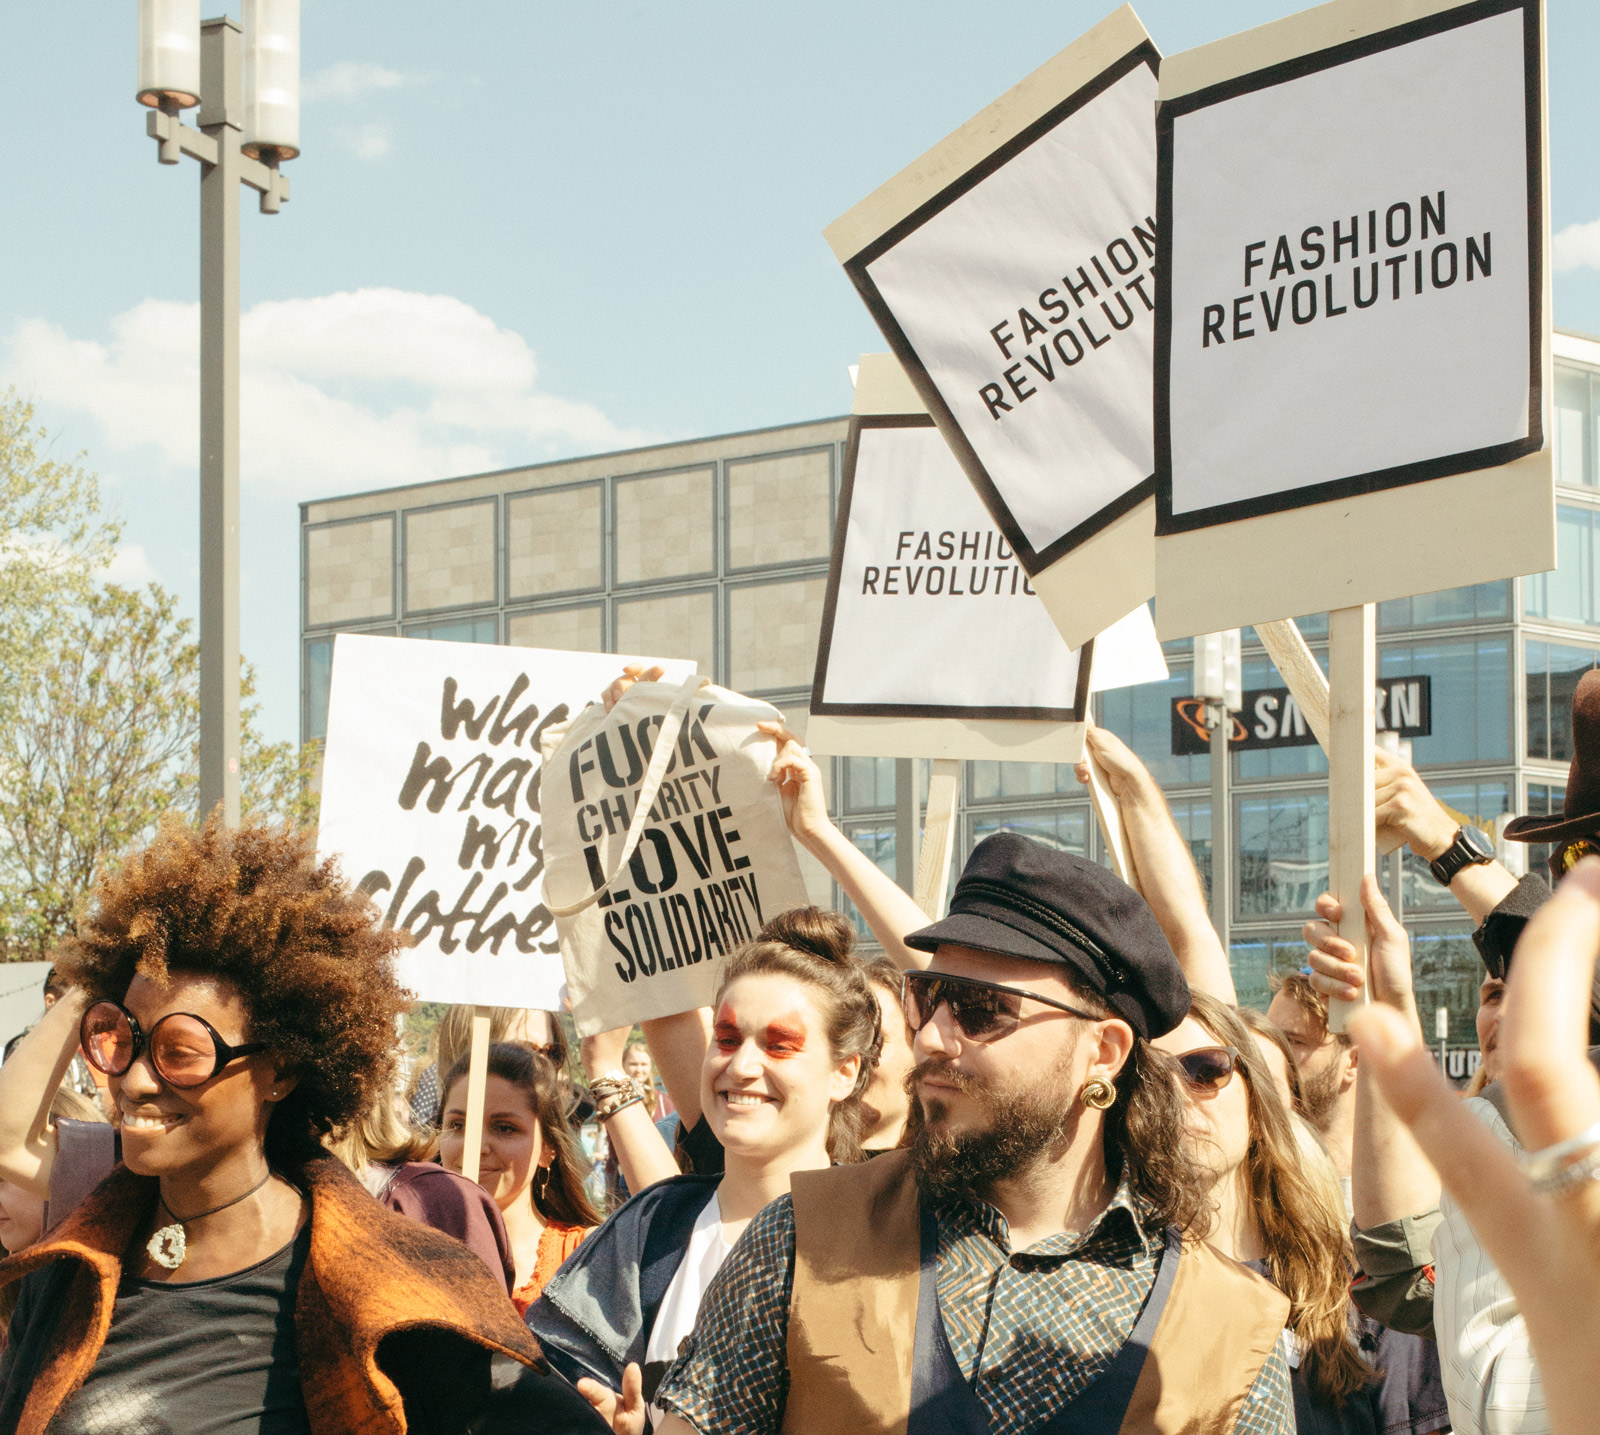 Fashion Revolution 2018 Flash Mob at Alexanderplatz, Berlin / captured by Nikolett Madai